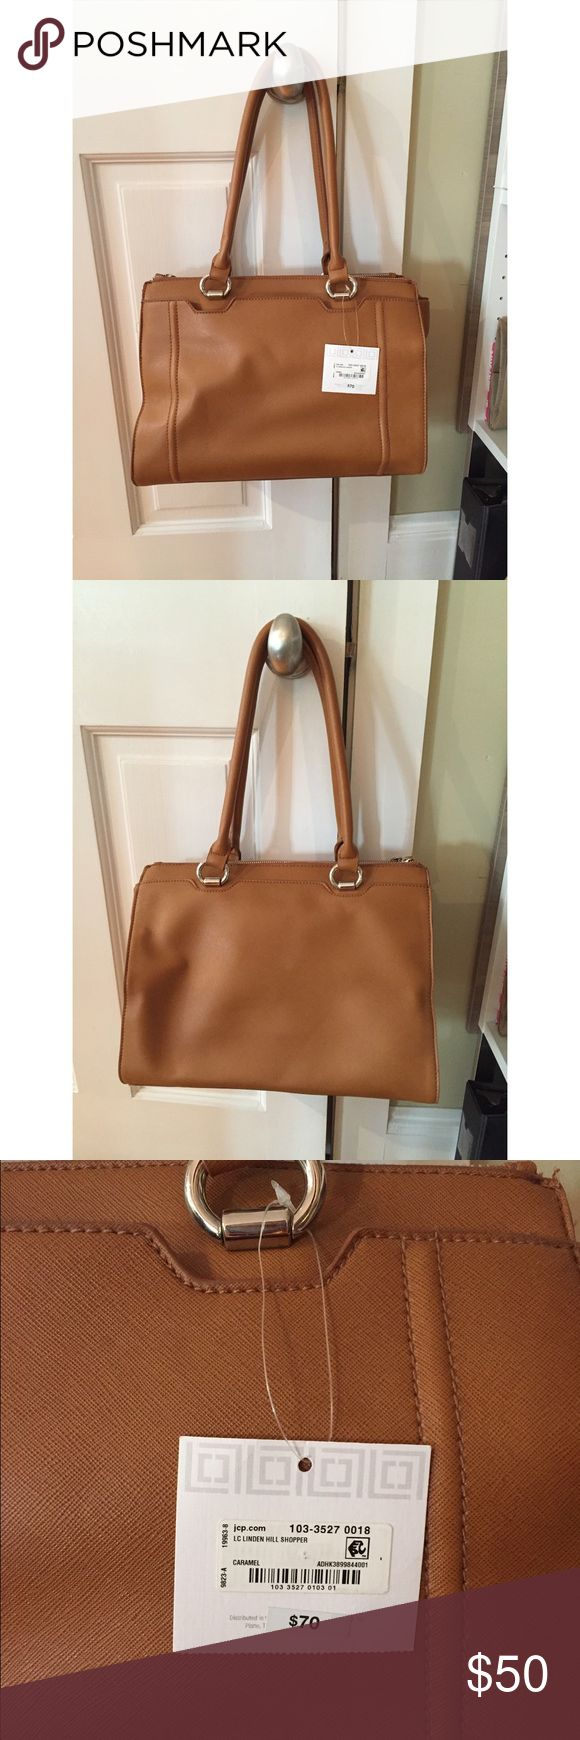 JcPenny brown tote bag Don't hesitate to ask any questions! I'm flexible on the price 😁 Bags Totes